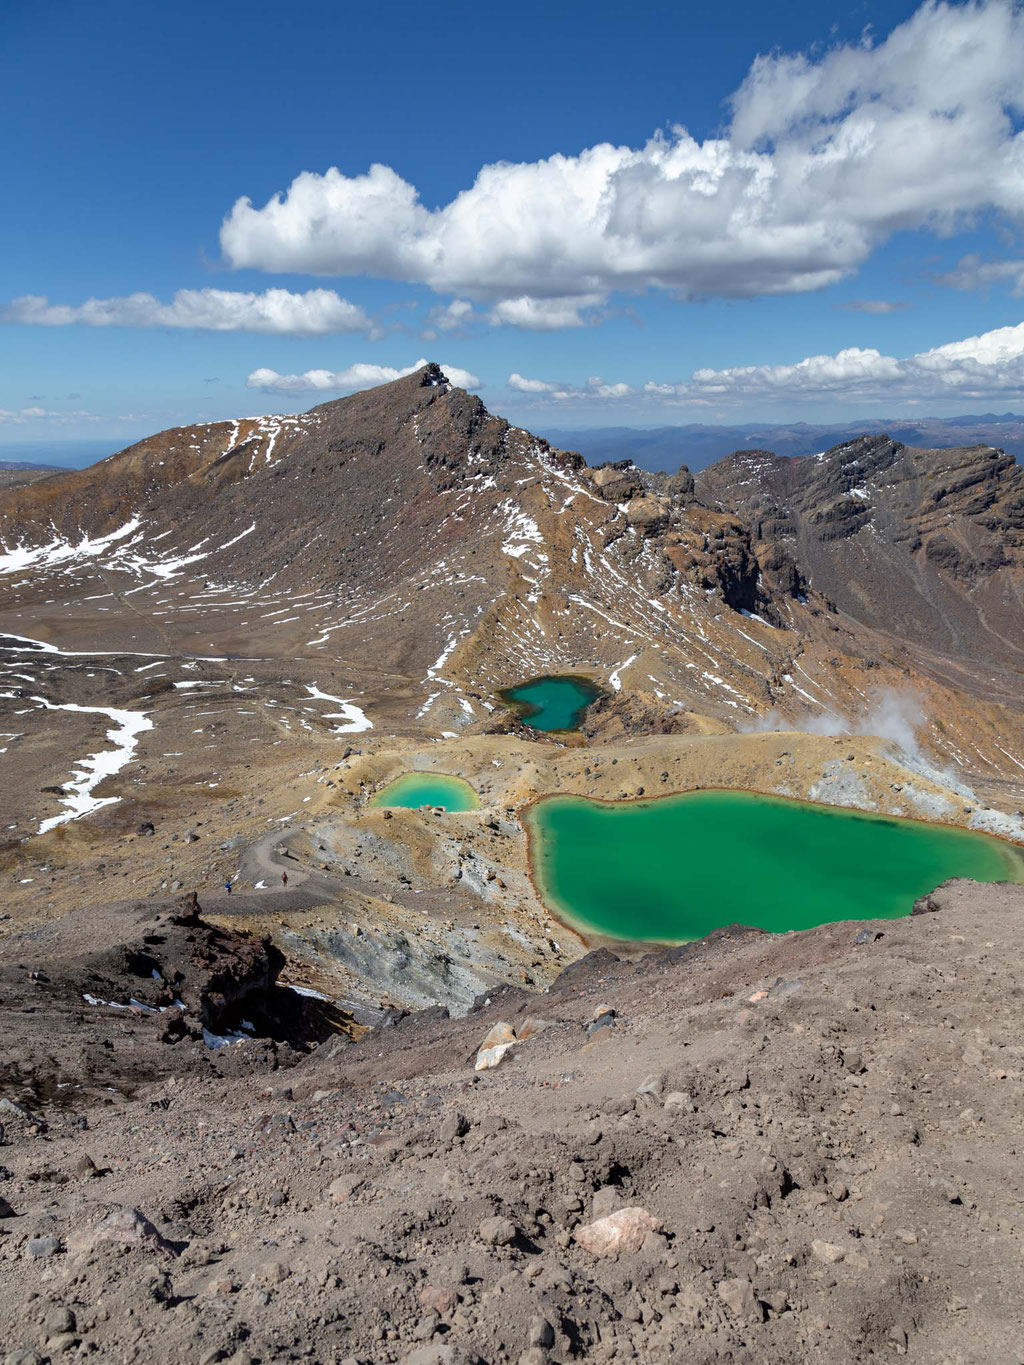 Emerald lakes viewed from the highest point of the Tongariro Crossing